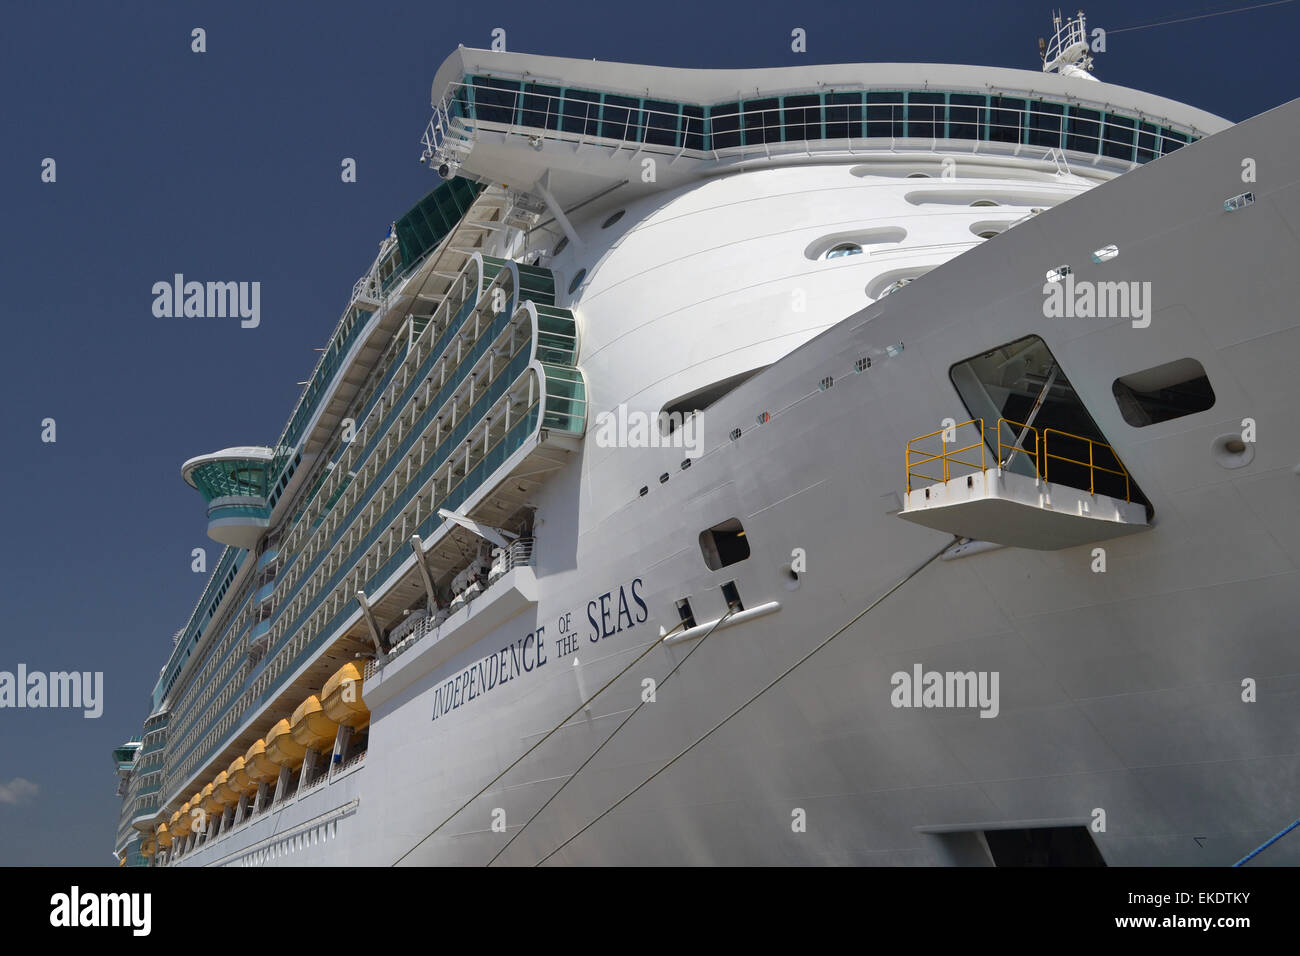 Independence of the Seas, cruise ship, Royal Caribbean - Stock Image